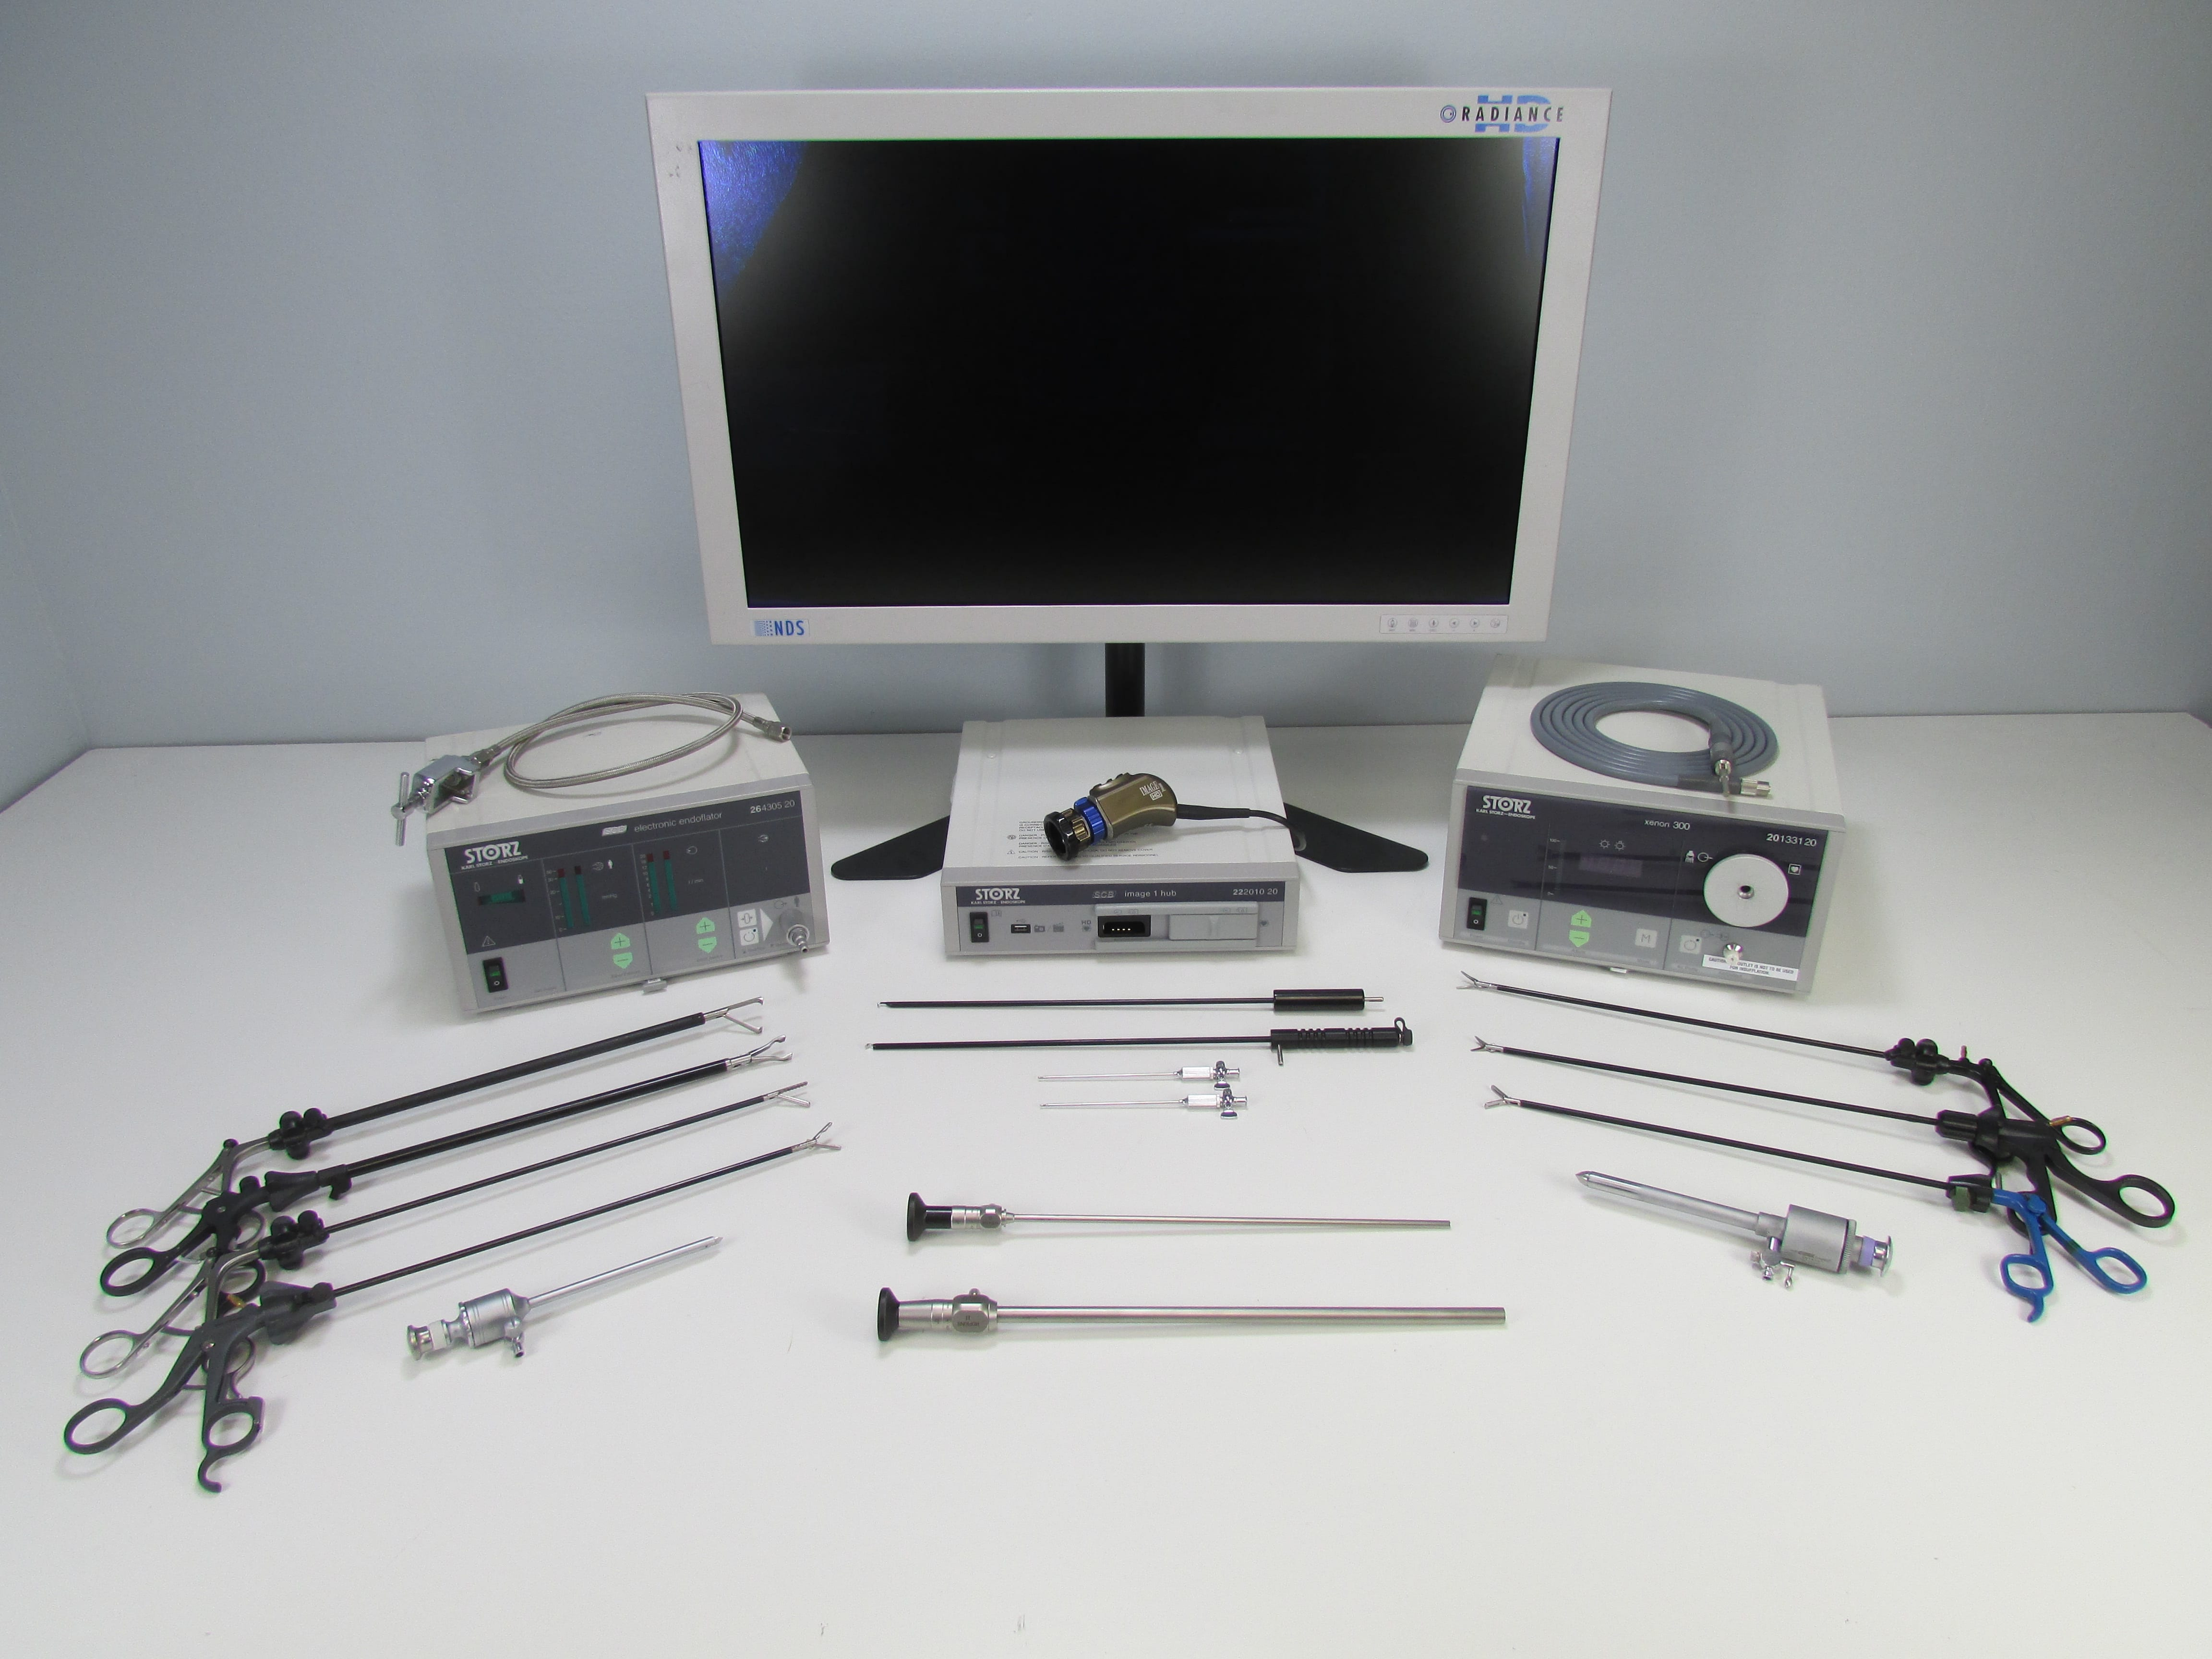 Karl Storz 22201020 Image 1 HD Laparoscopy Kit – AA Medical Store | 3456x4608